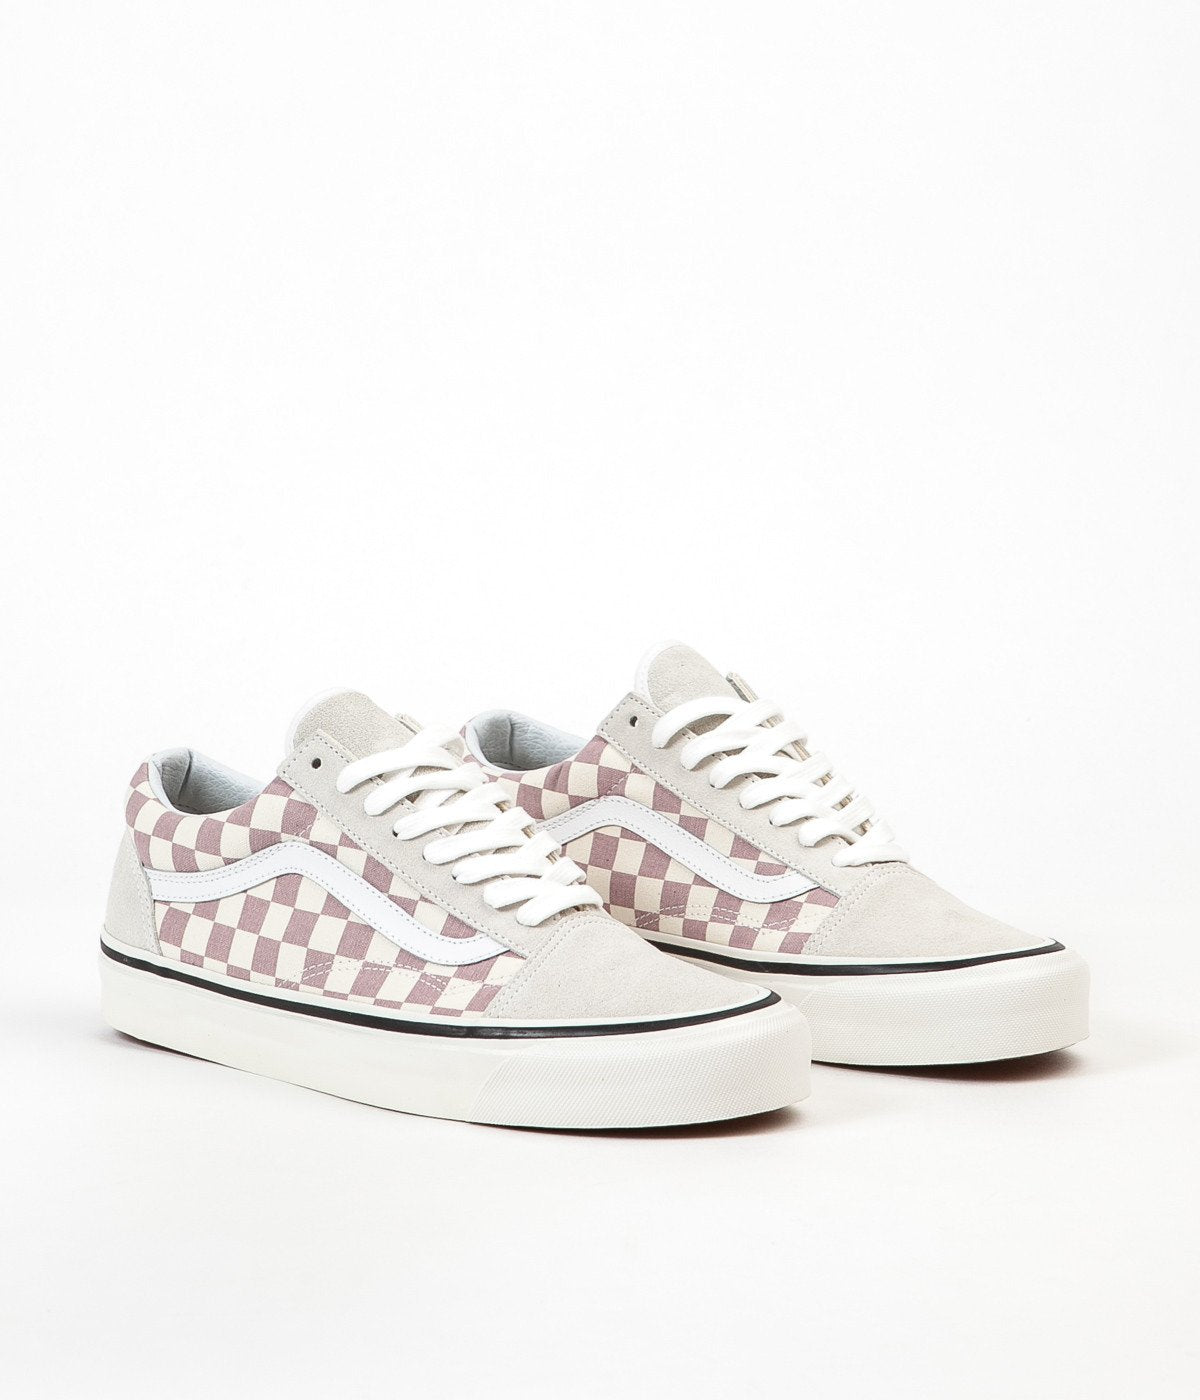 ffe61f62e1 ... Vans Old Skool 36 DX Anaheim Factory Shoes - OG Mauve   Check ...